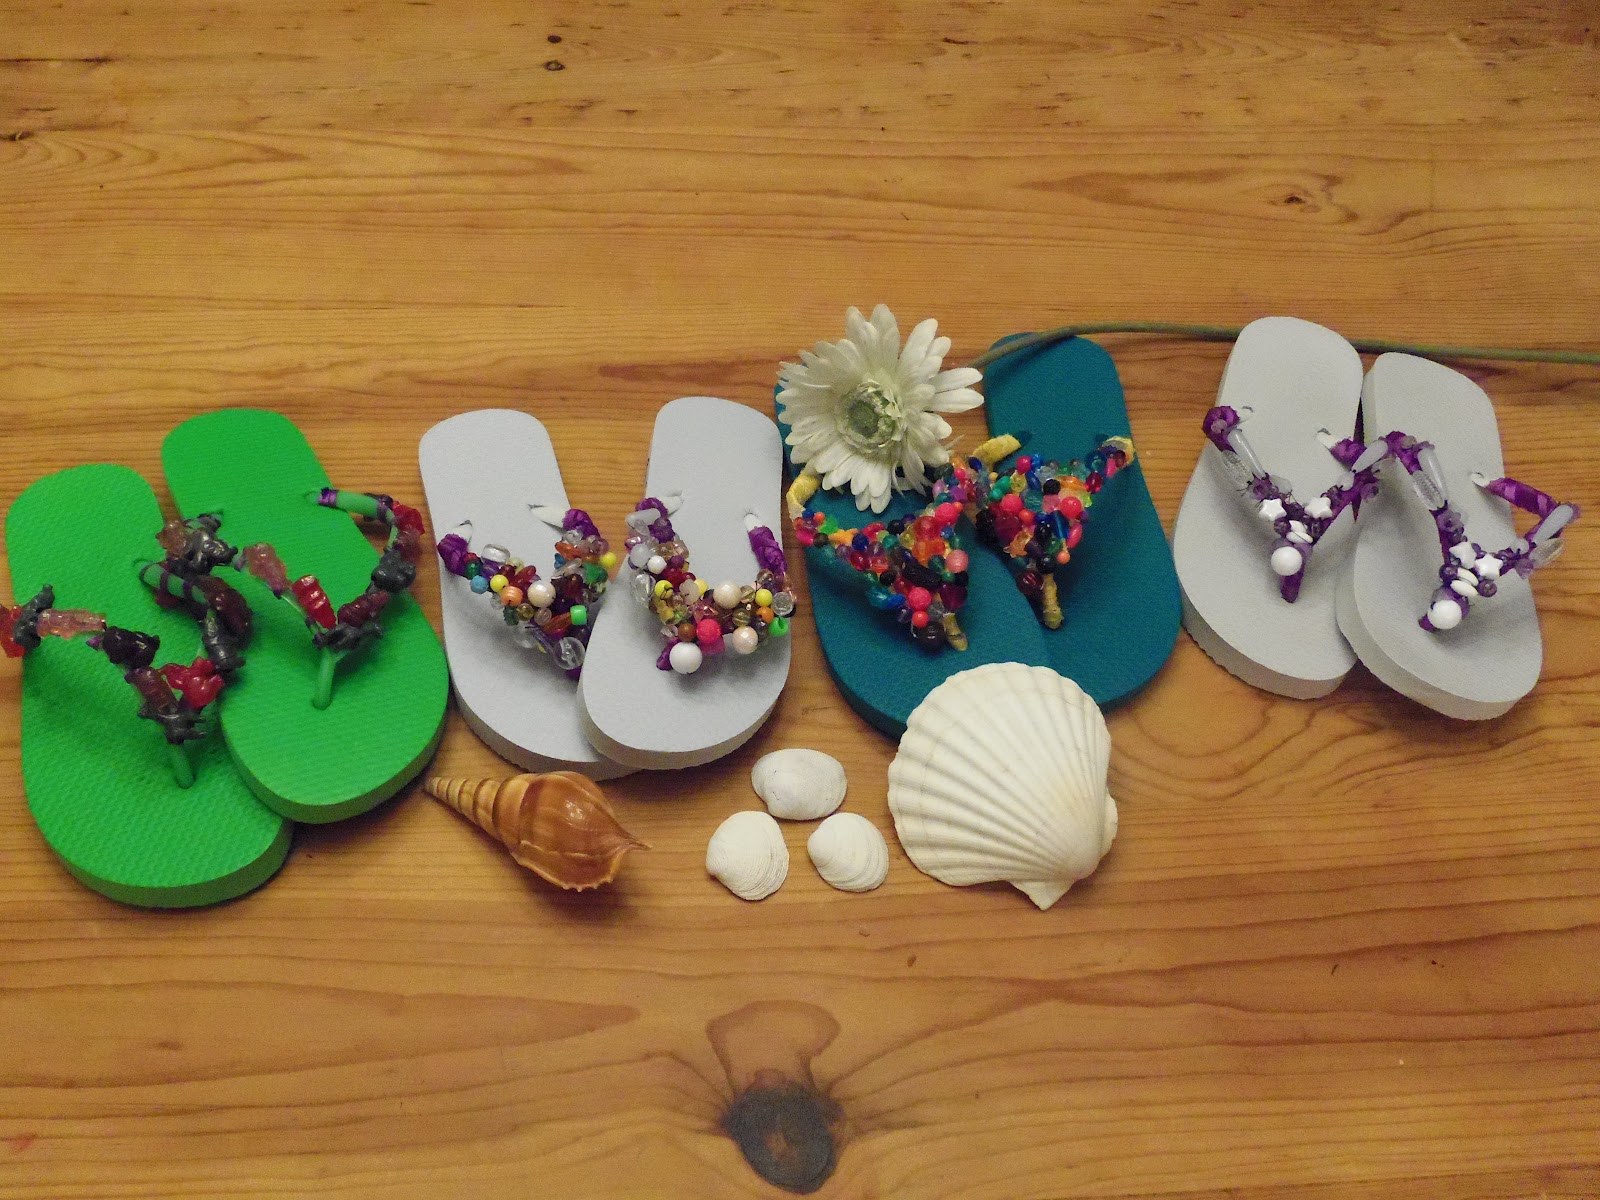 d6f9a979a263bf HollysHome Family Life  Decorating Flip Flops With Ribbon and Beads